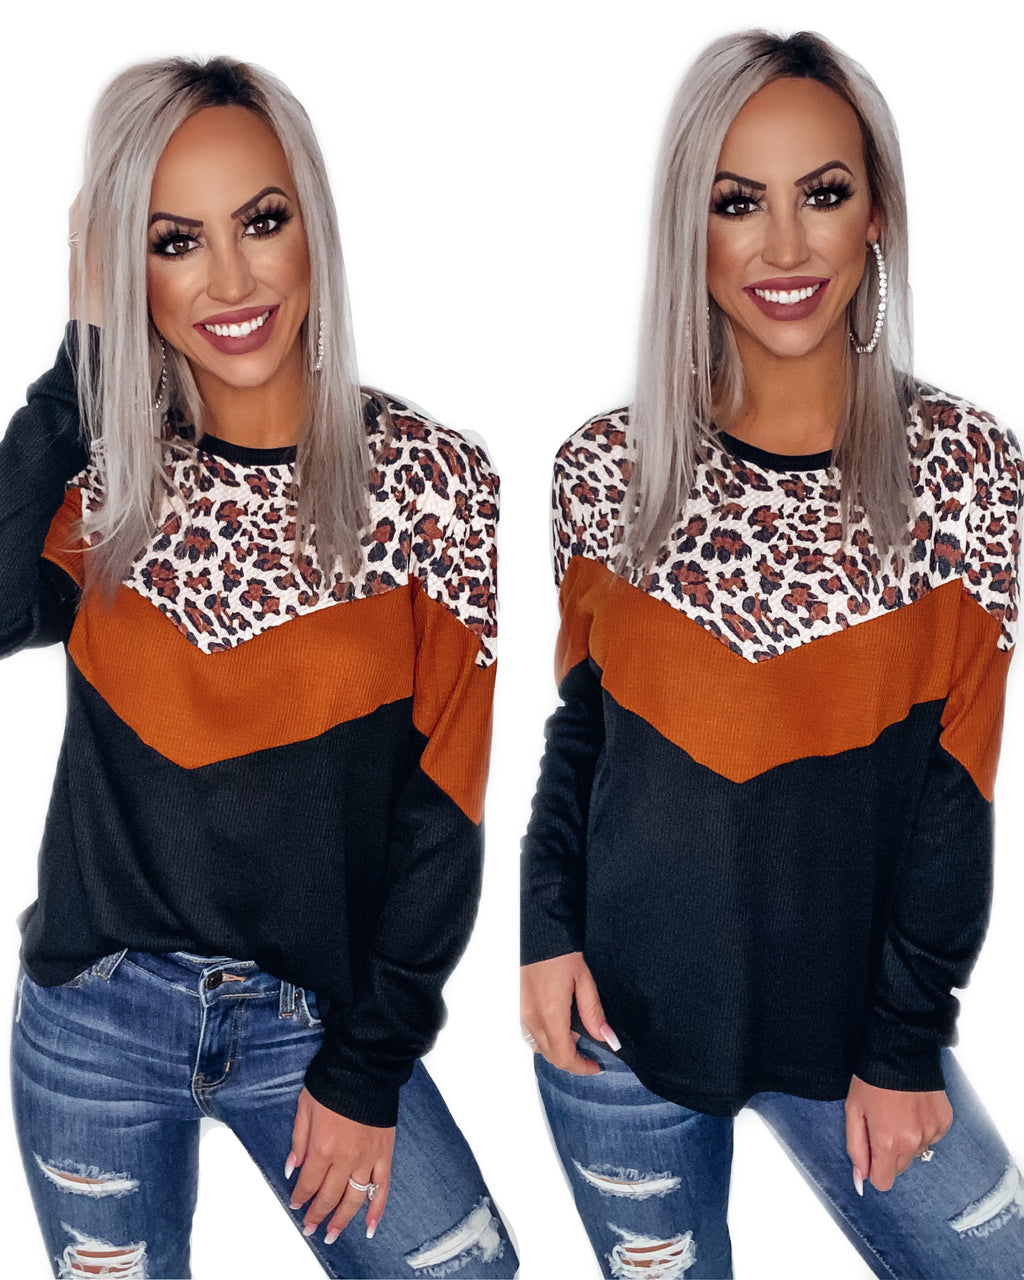 Pick Of The Patch Leopard Colorblock Top - Black/Rust